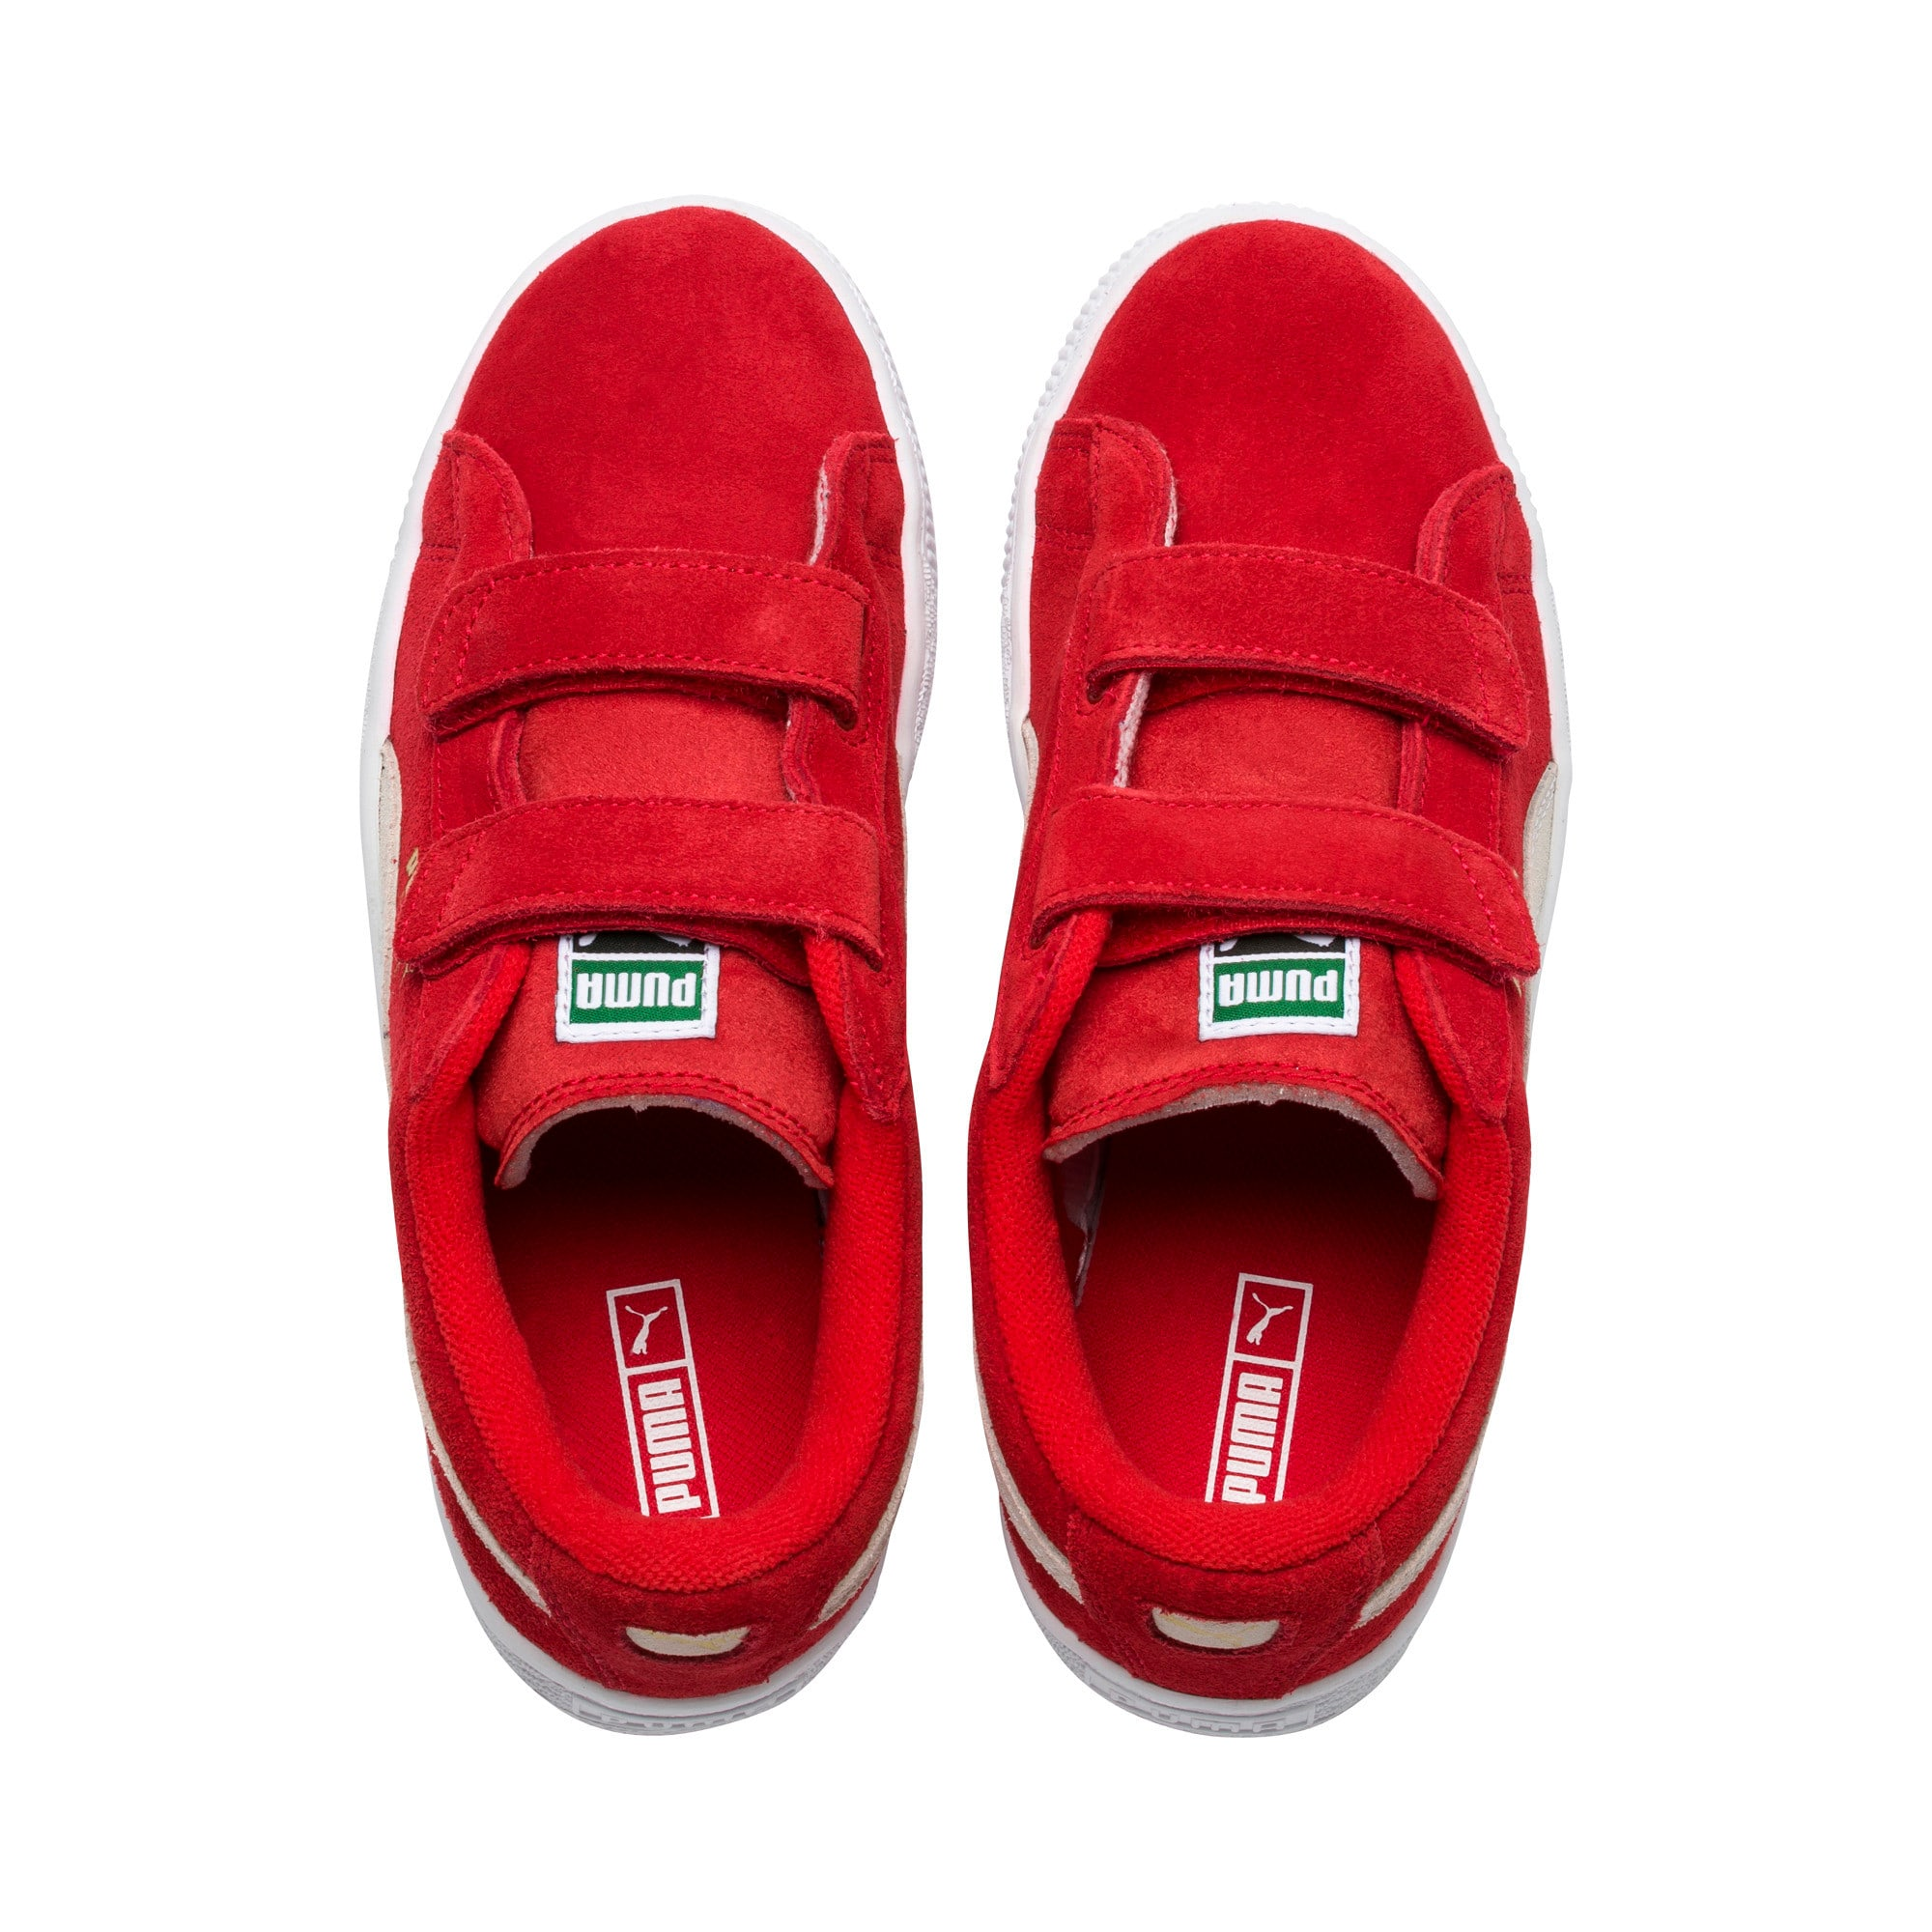 Thumbnail 6 of Suede Kids' Trainers, High Risk Red-Puma White, medium